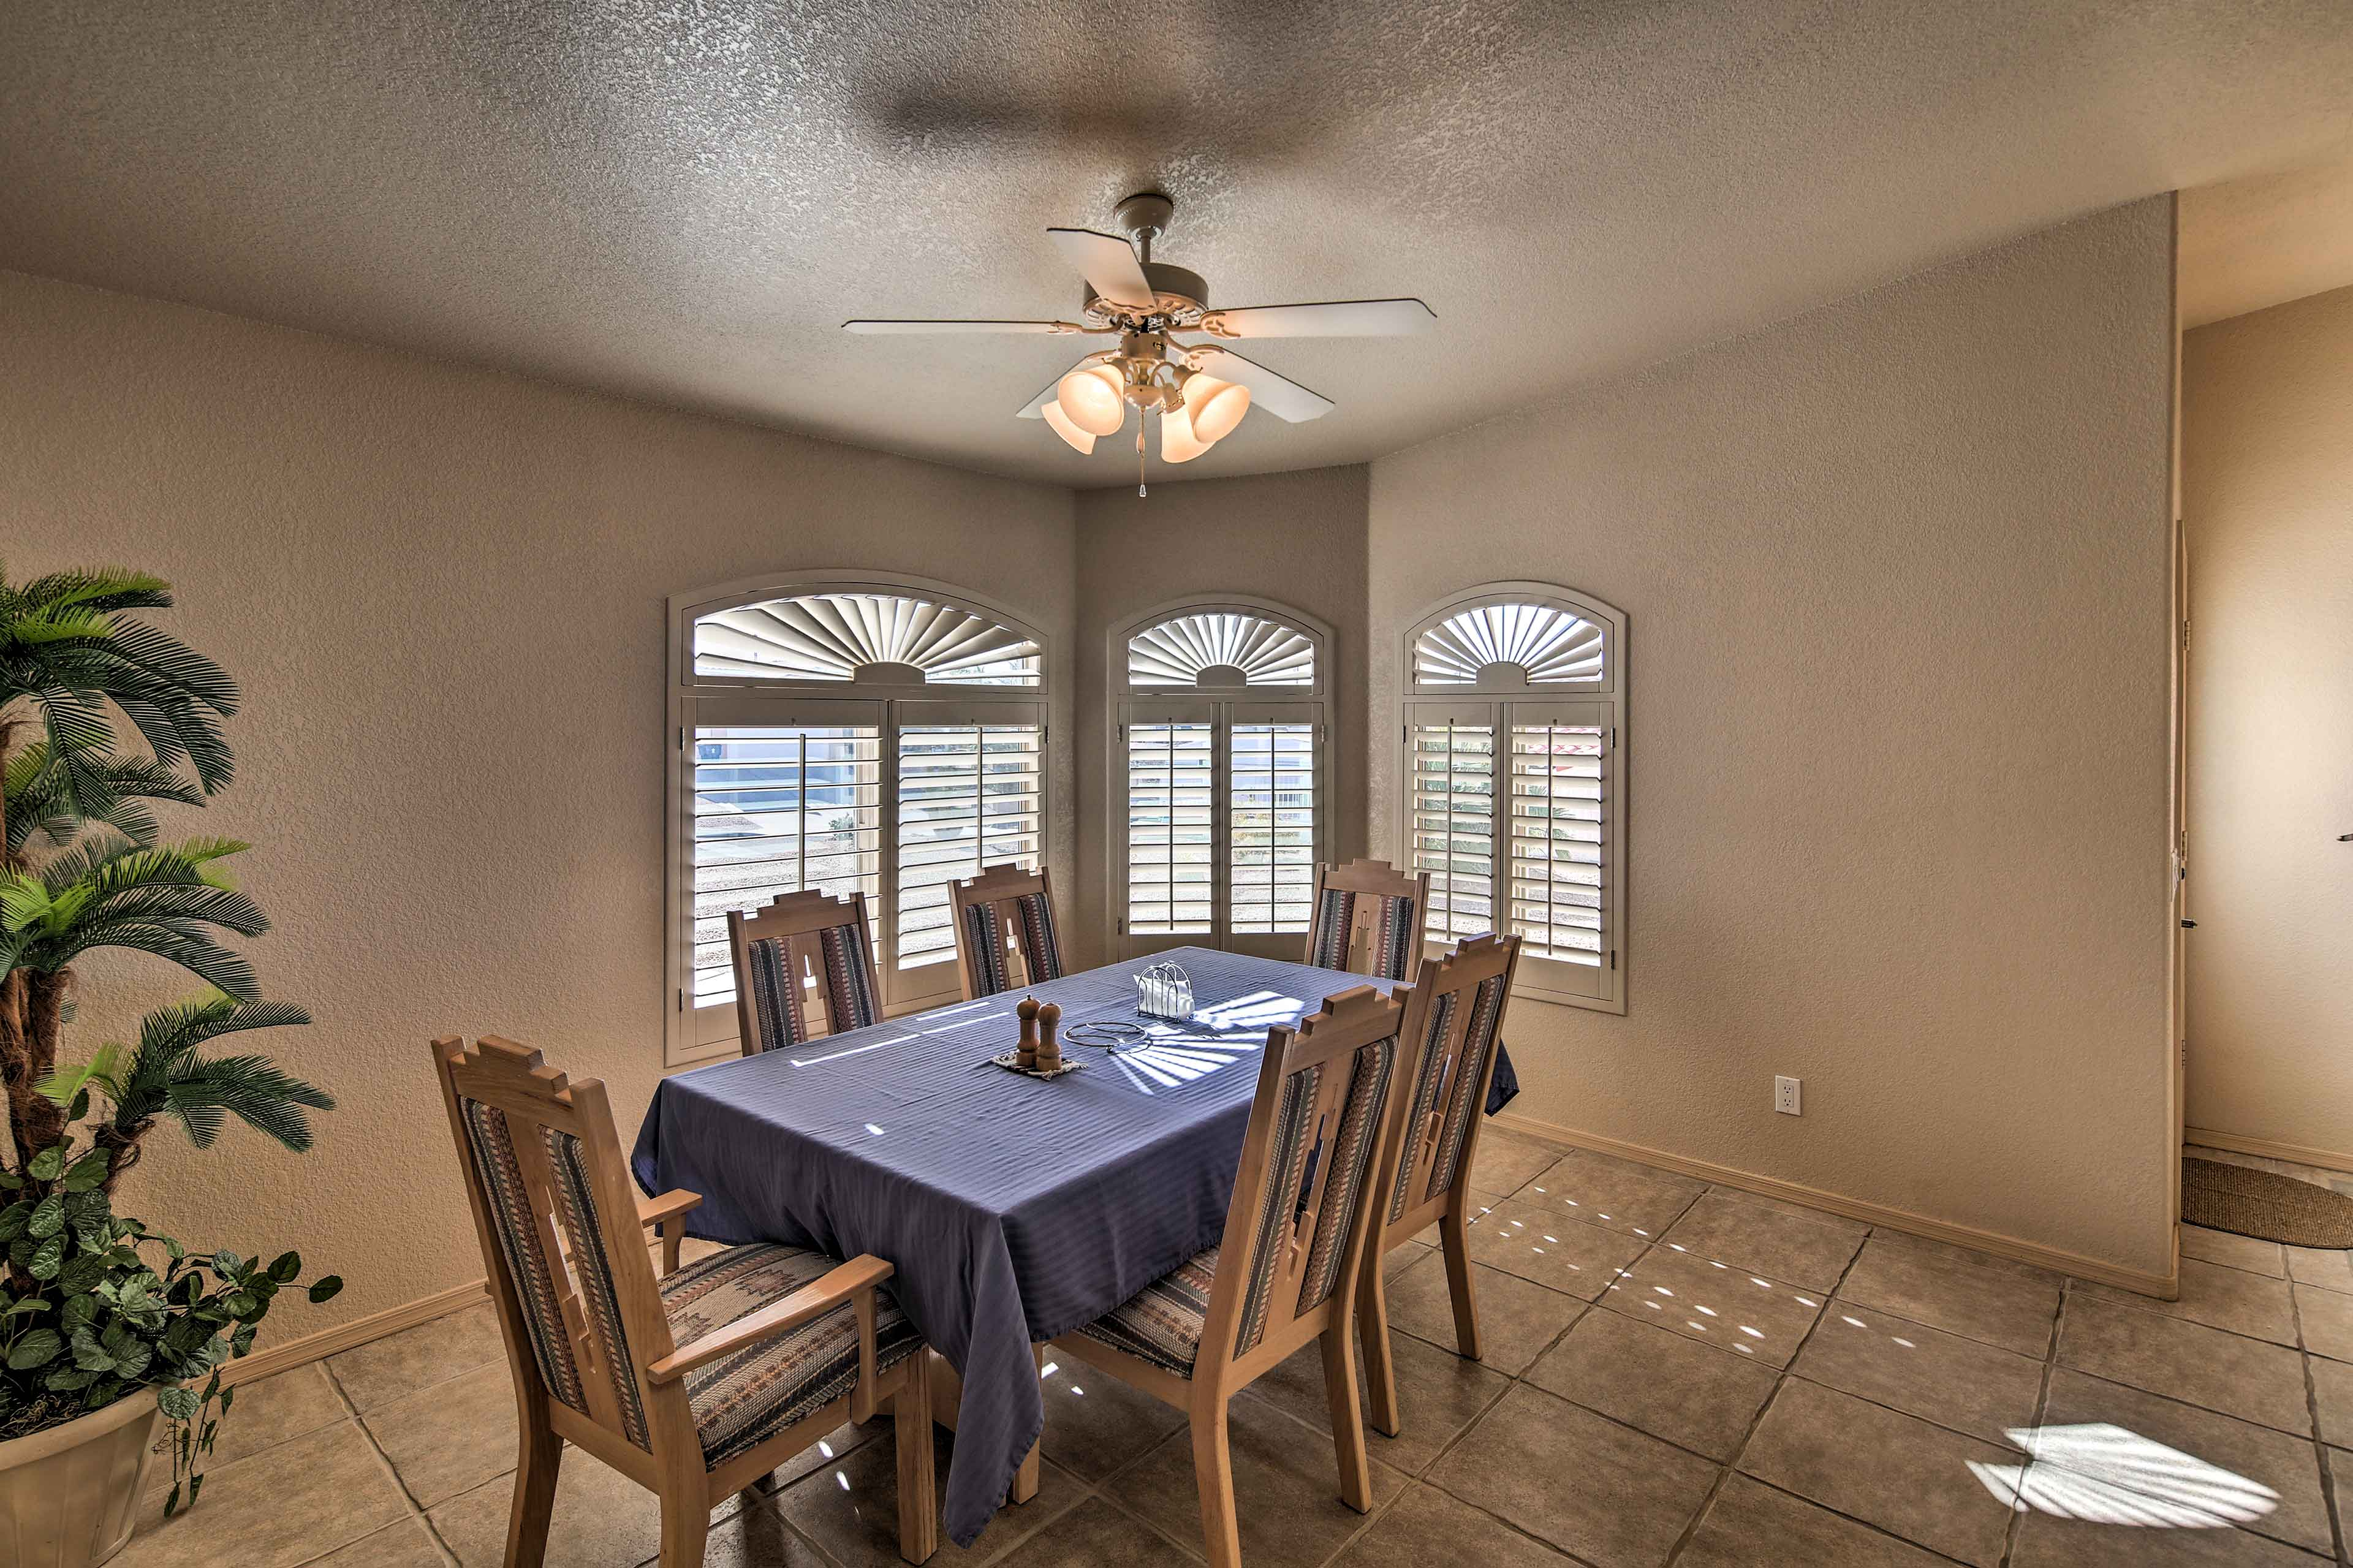 Enjoy home-cooked meals at the large dining table.